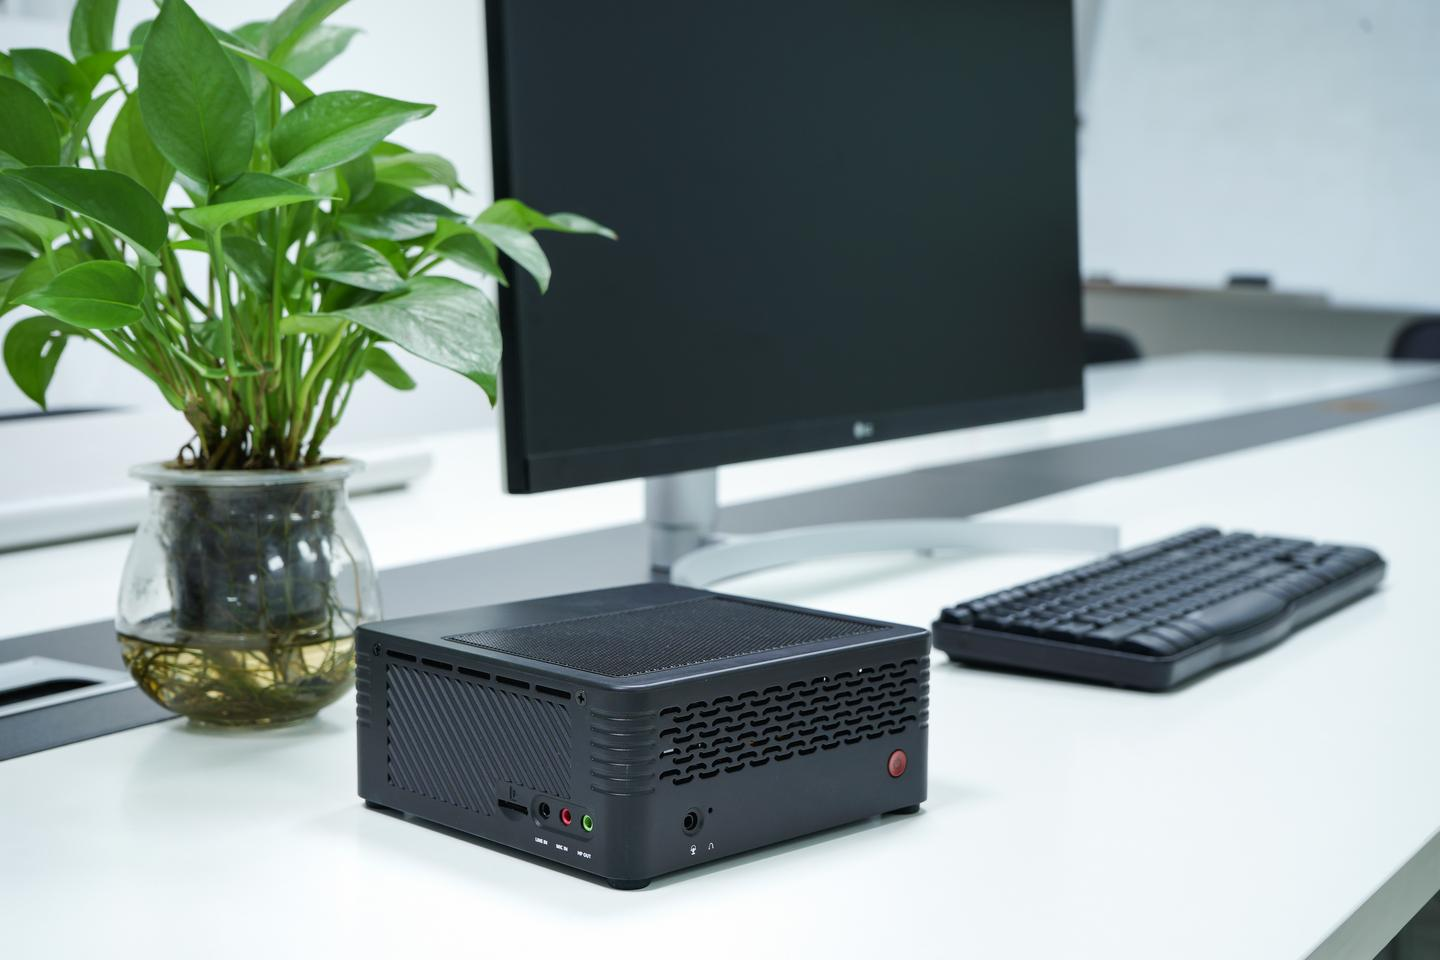 The Minisforum EliteMini H31G is a mini PC with a focus on gaming